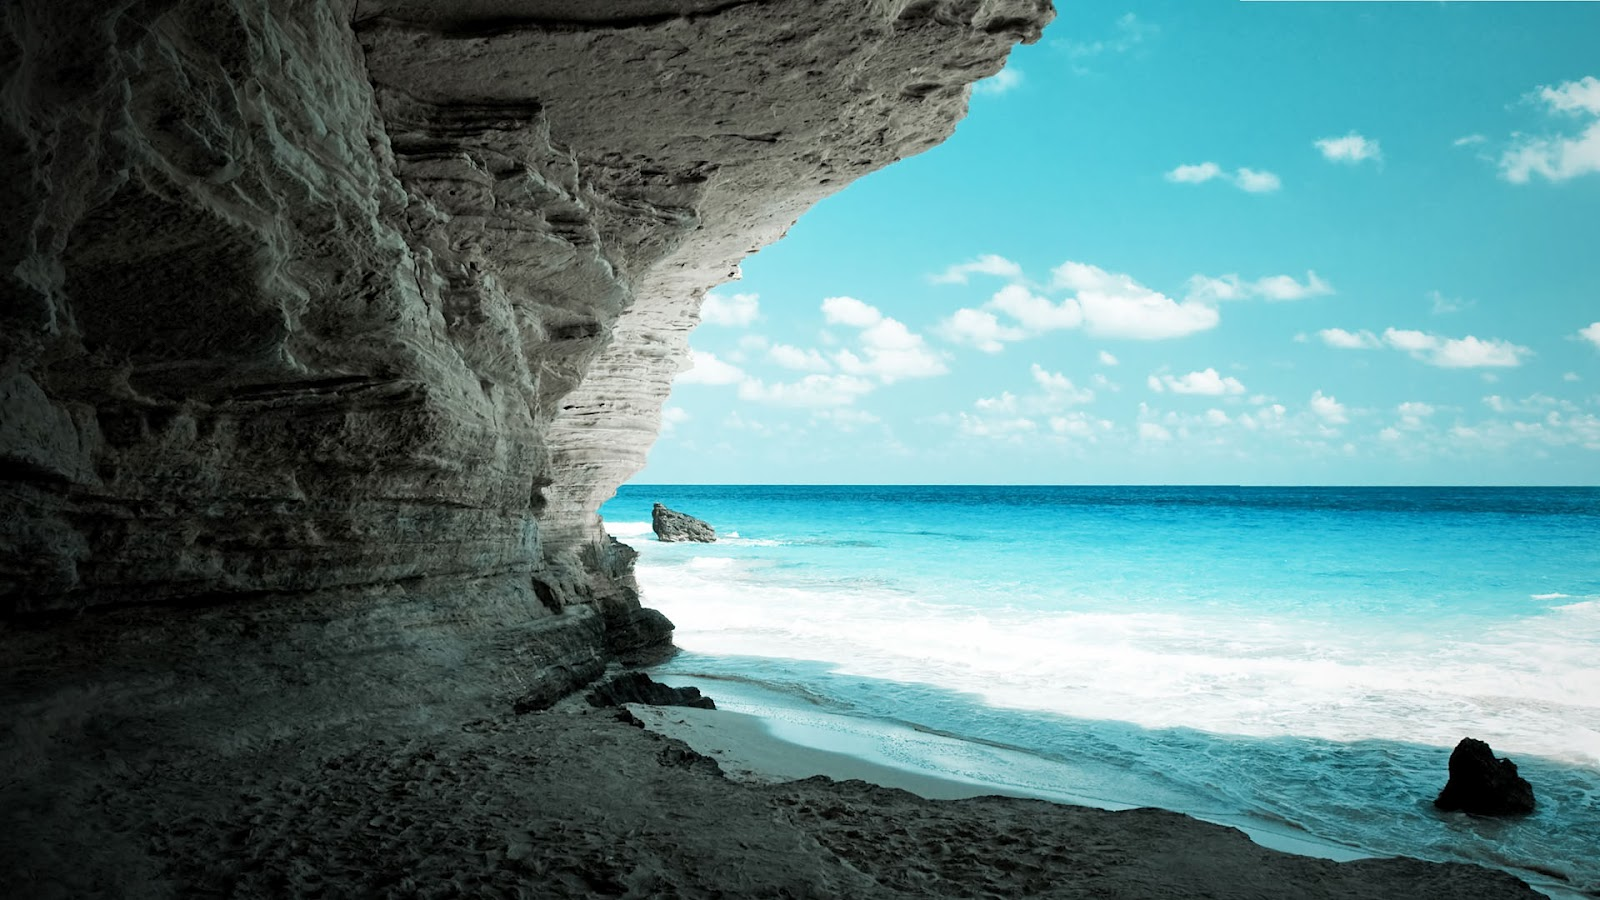 Download amazing full hd wallpaper cave on the beach wallpaperjpg